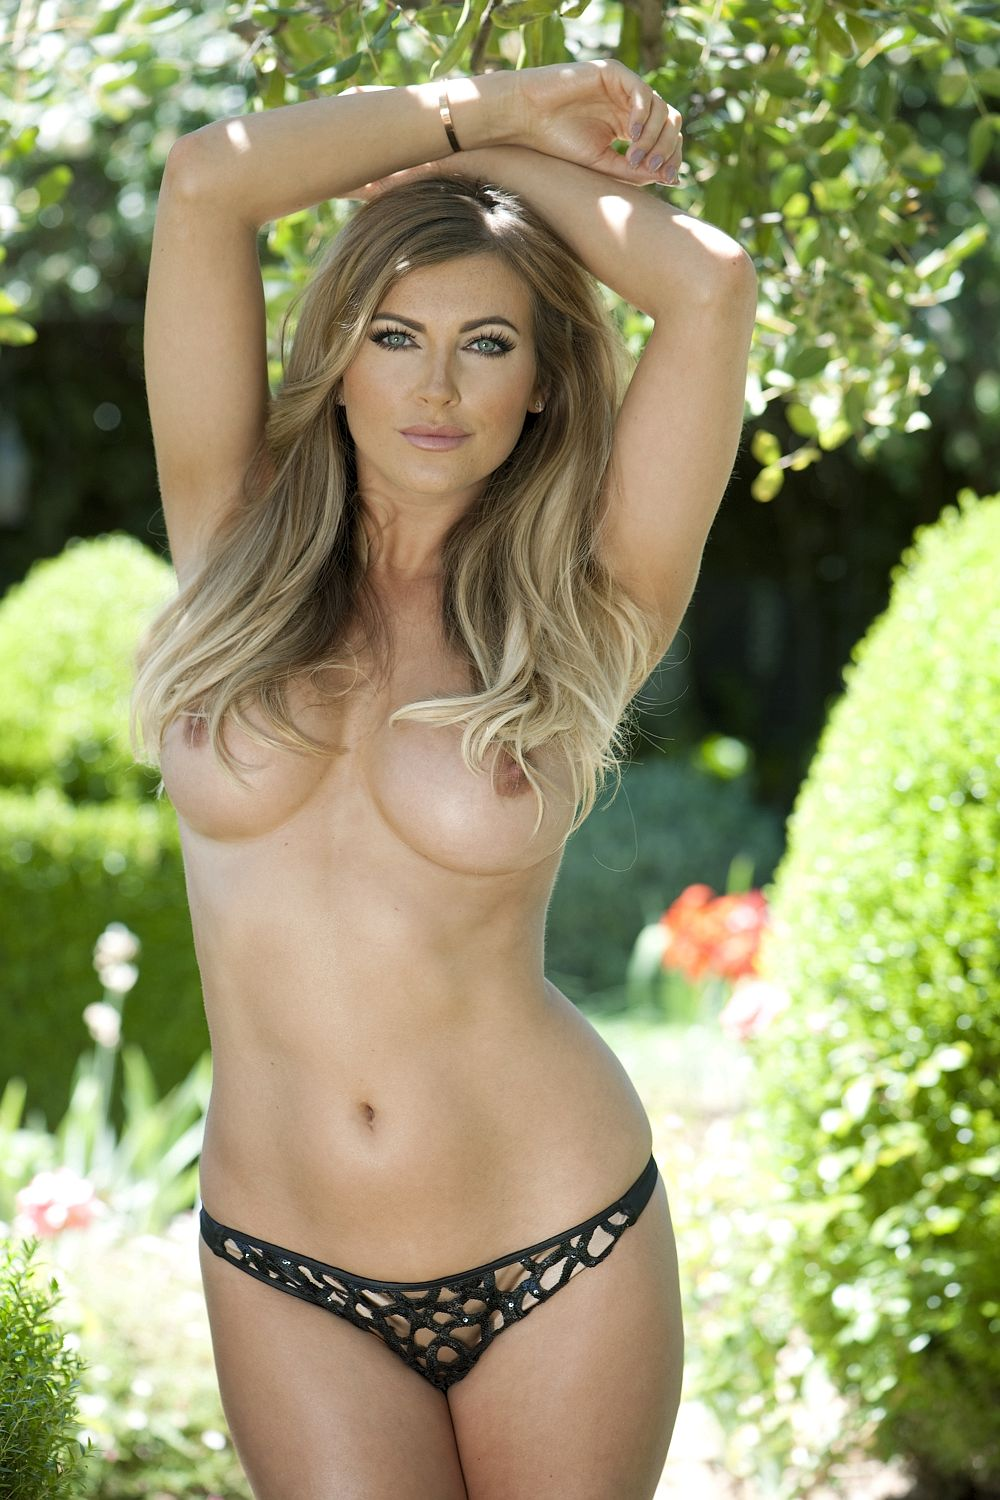 Topless Pics Of Sam Cooke